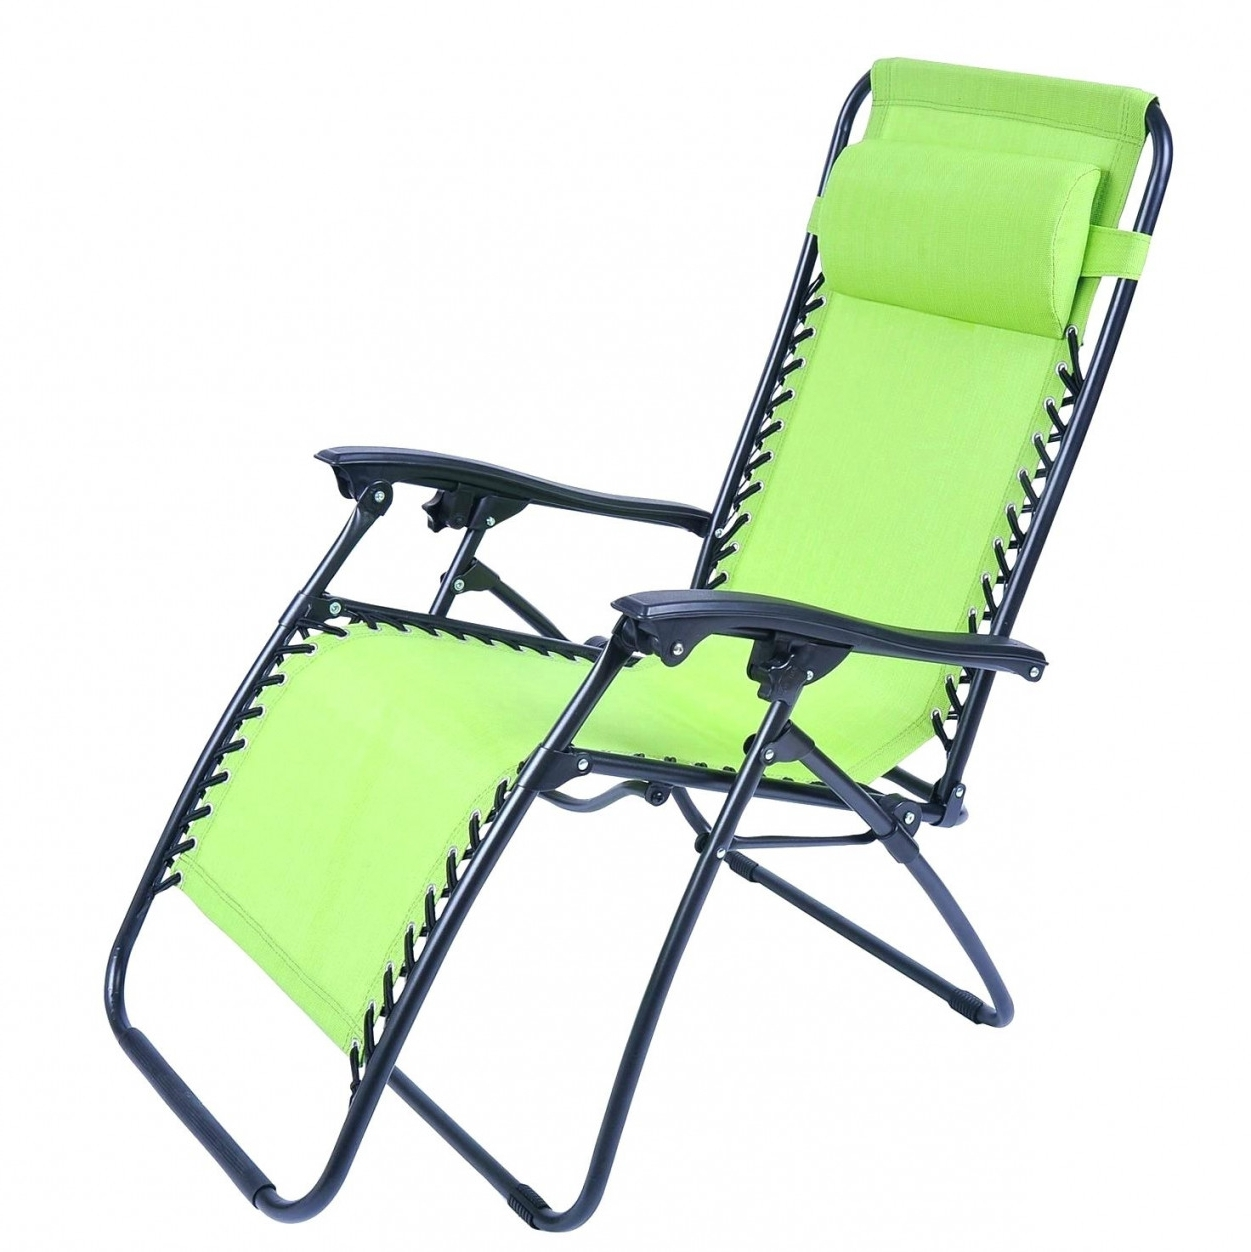 Favorite Cheap Folding Chaise Lounge Chairs Outdoor Beach Chair Beach Within Cheap Folding Chaise Lounge Chairs For Outdoor (View 6 of 15)